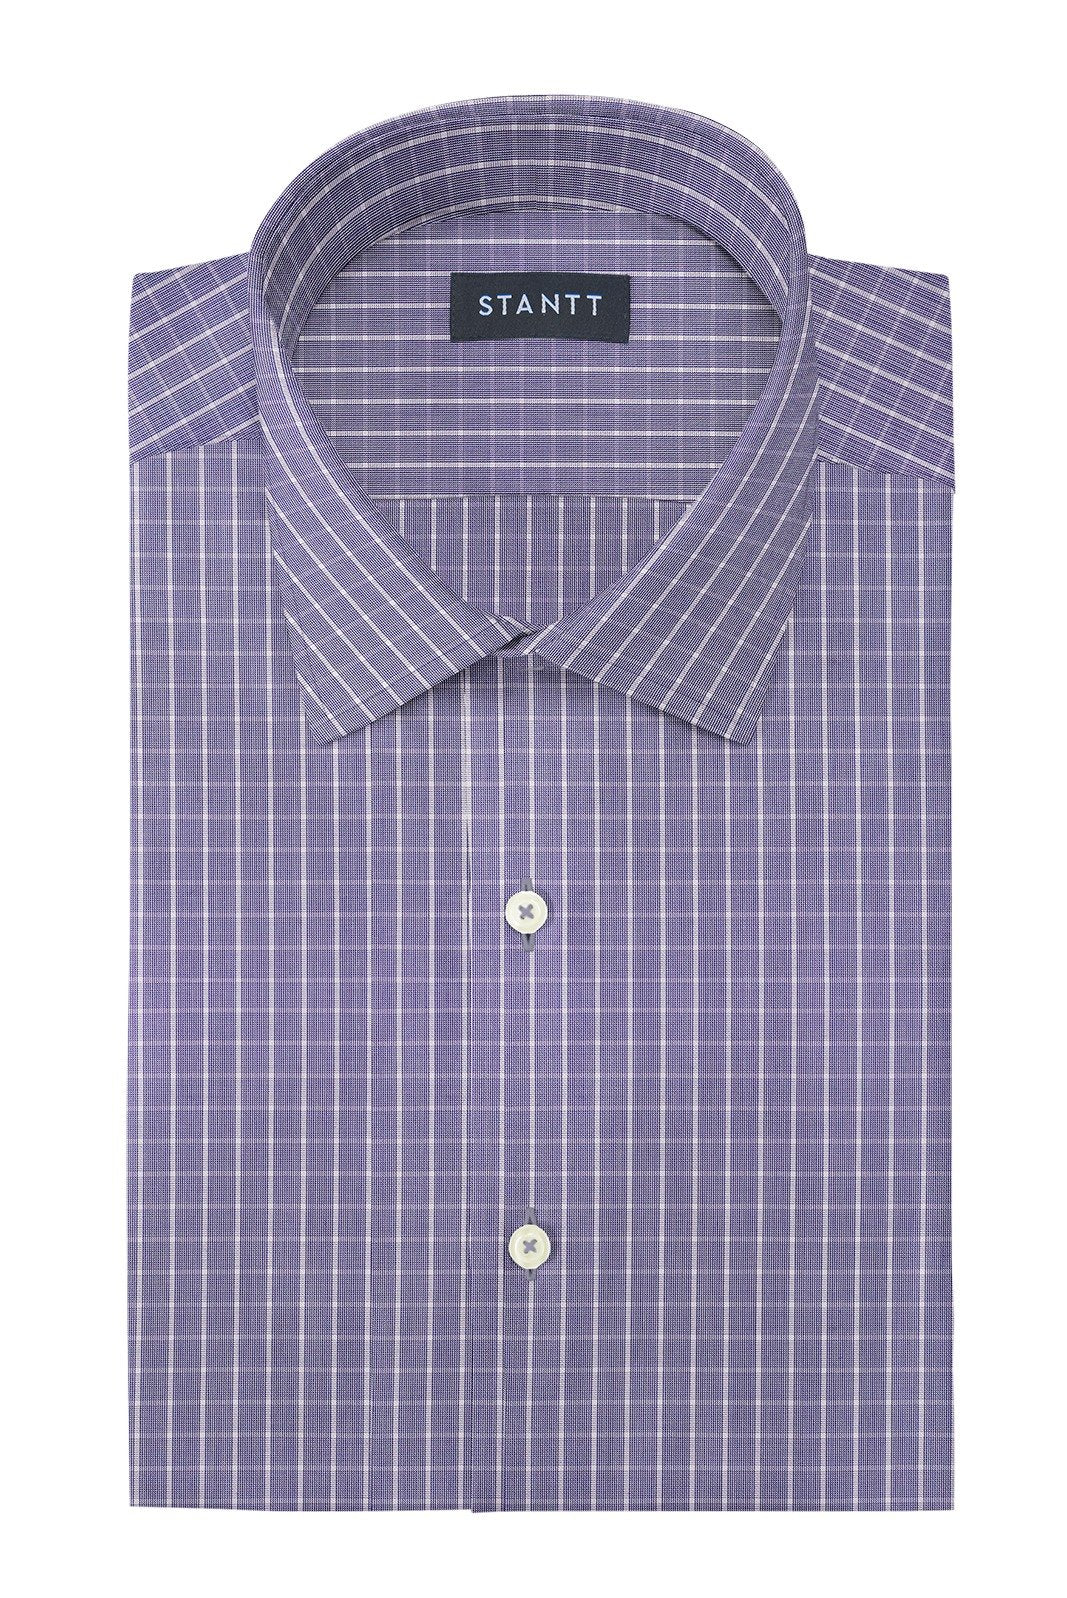 Wrinkle-Resistant Navy Gingham: Modified-Spread Collar, French Cuff